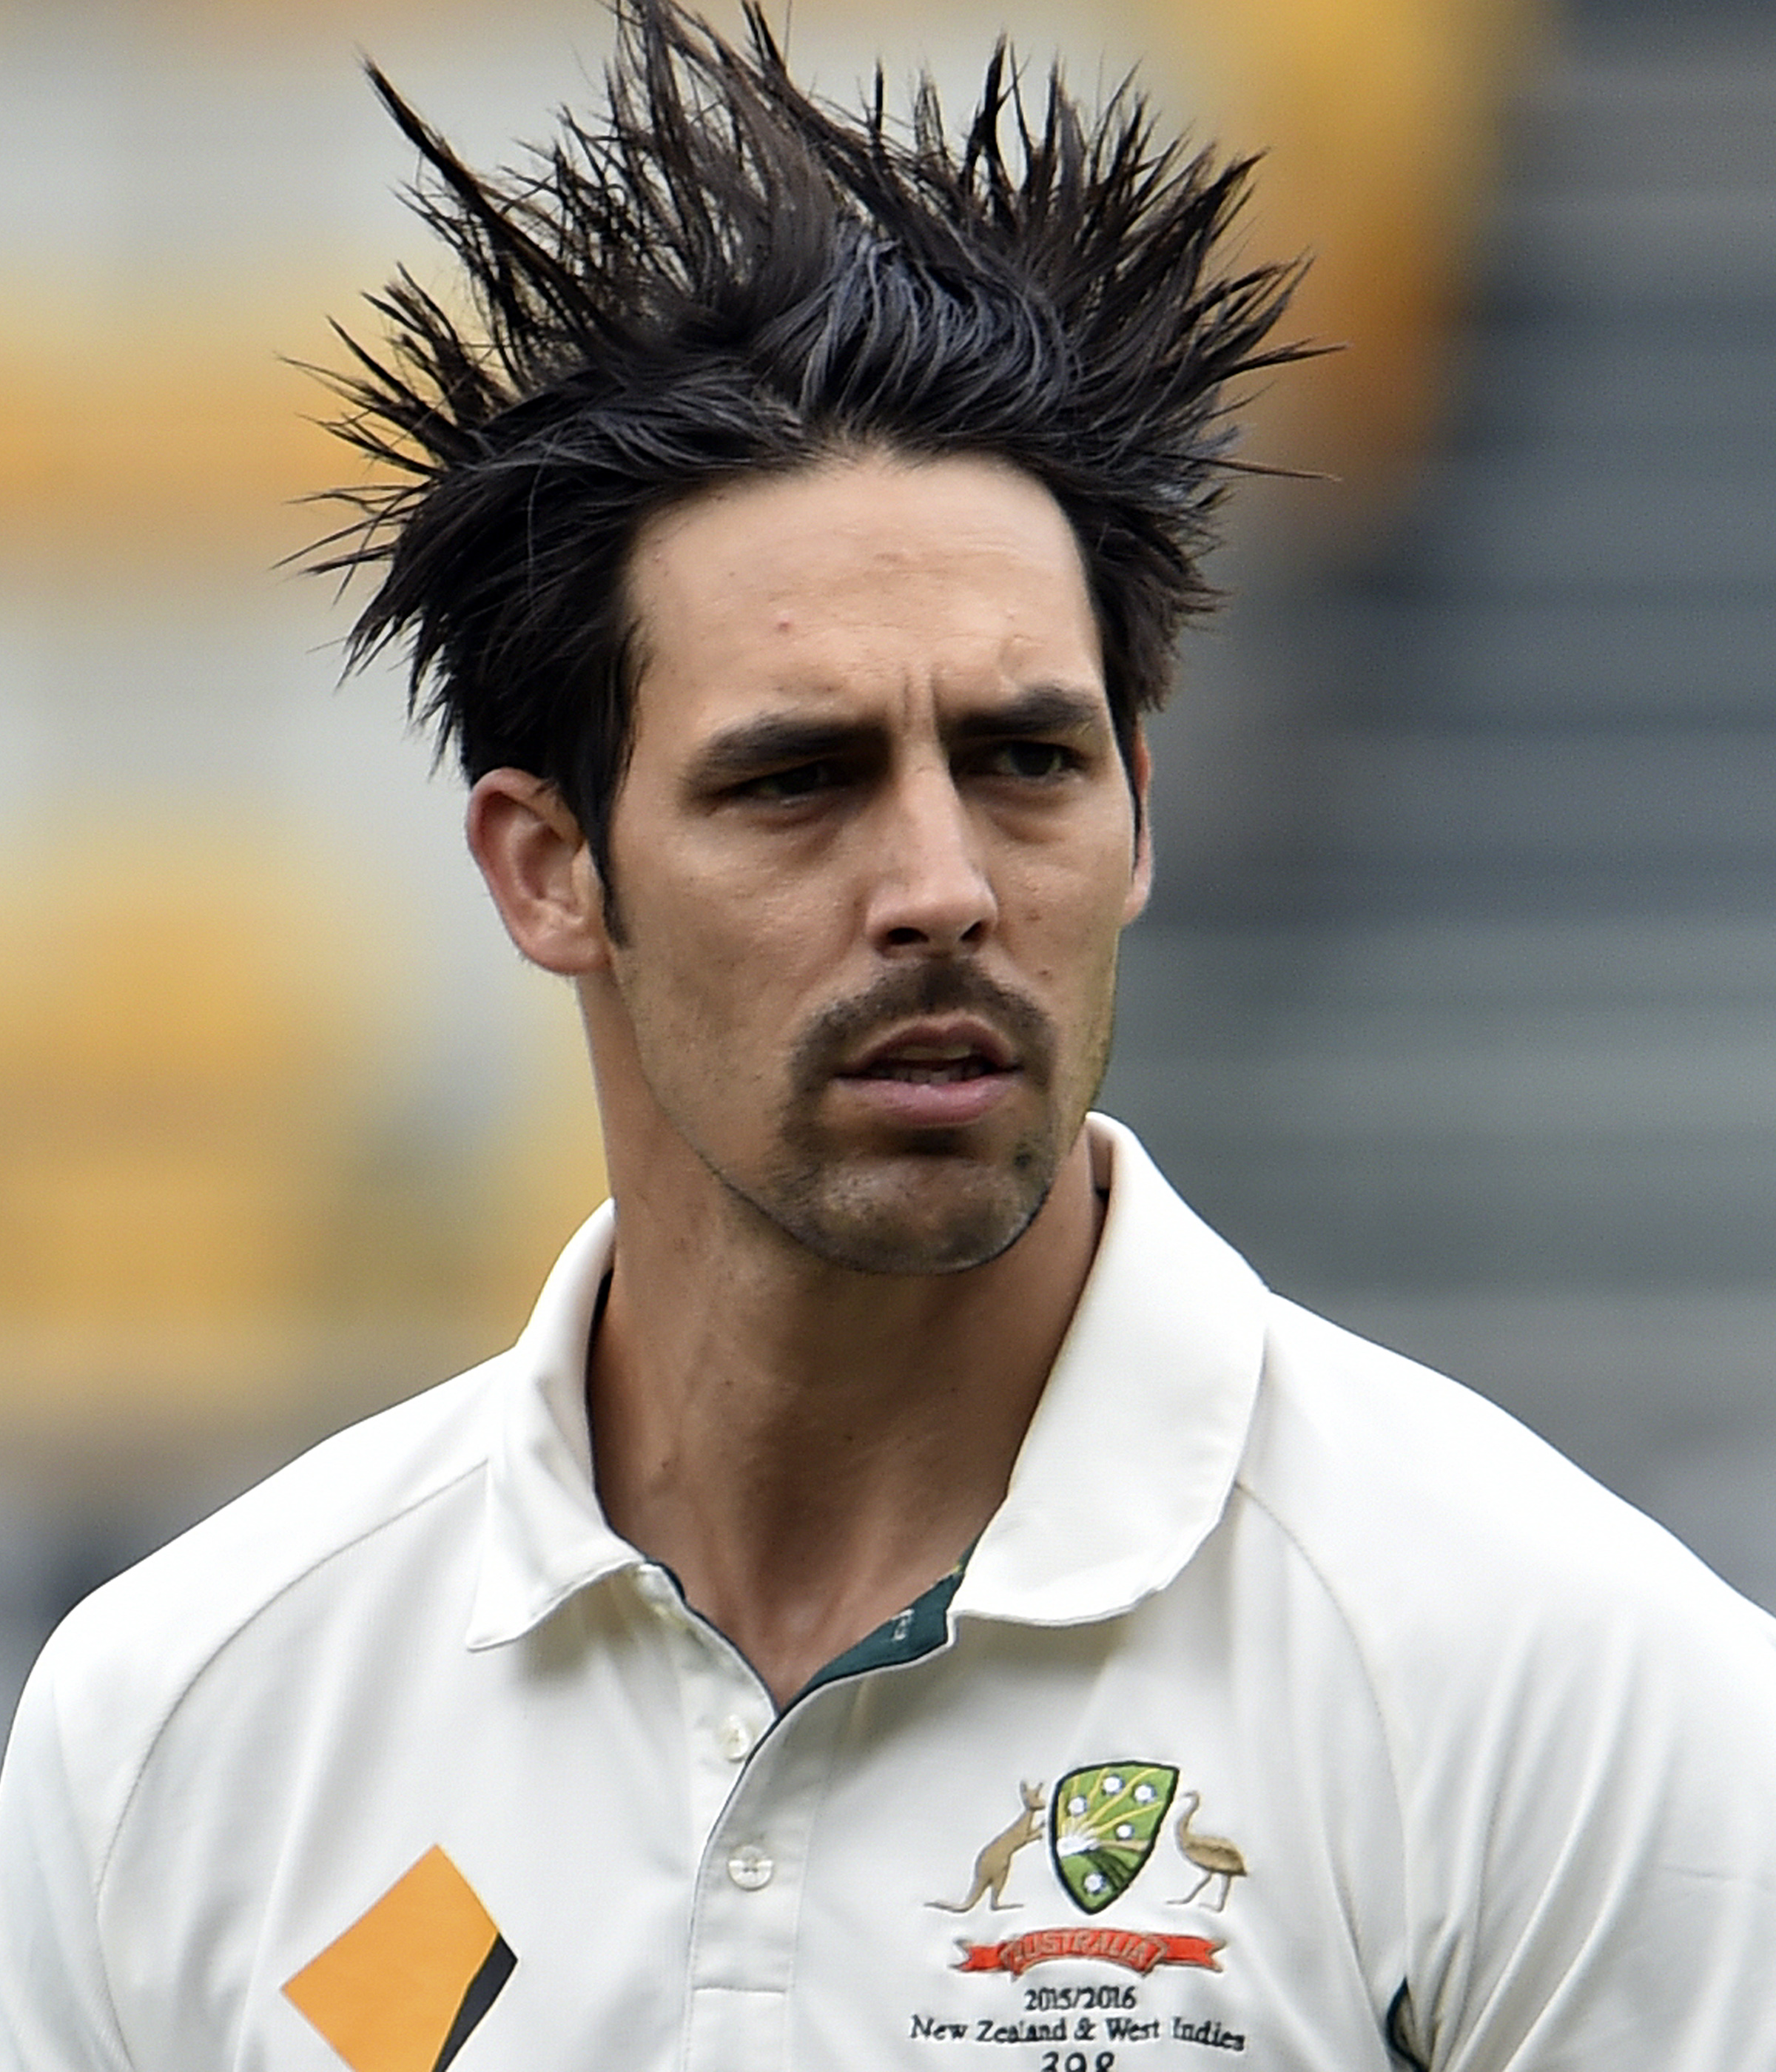 gallery: cricket's most outrageous haircuts | cricket.au